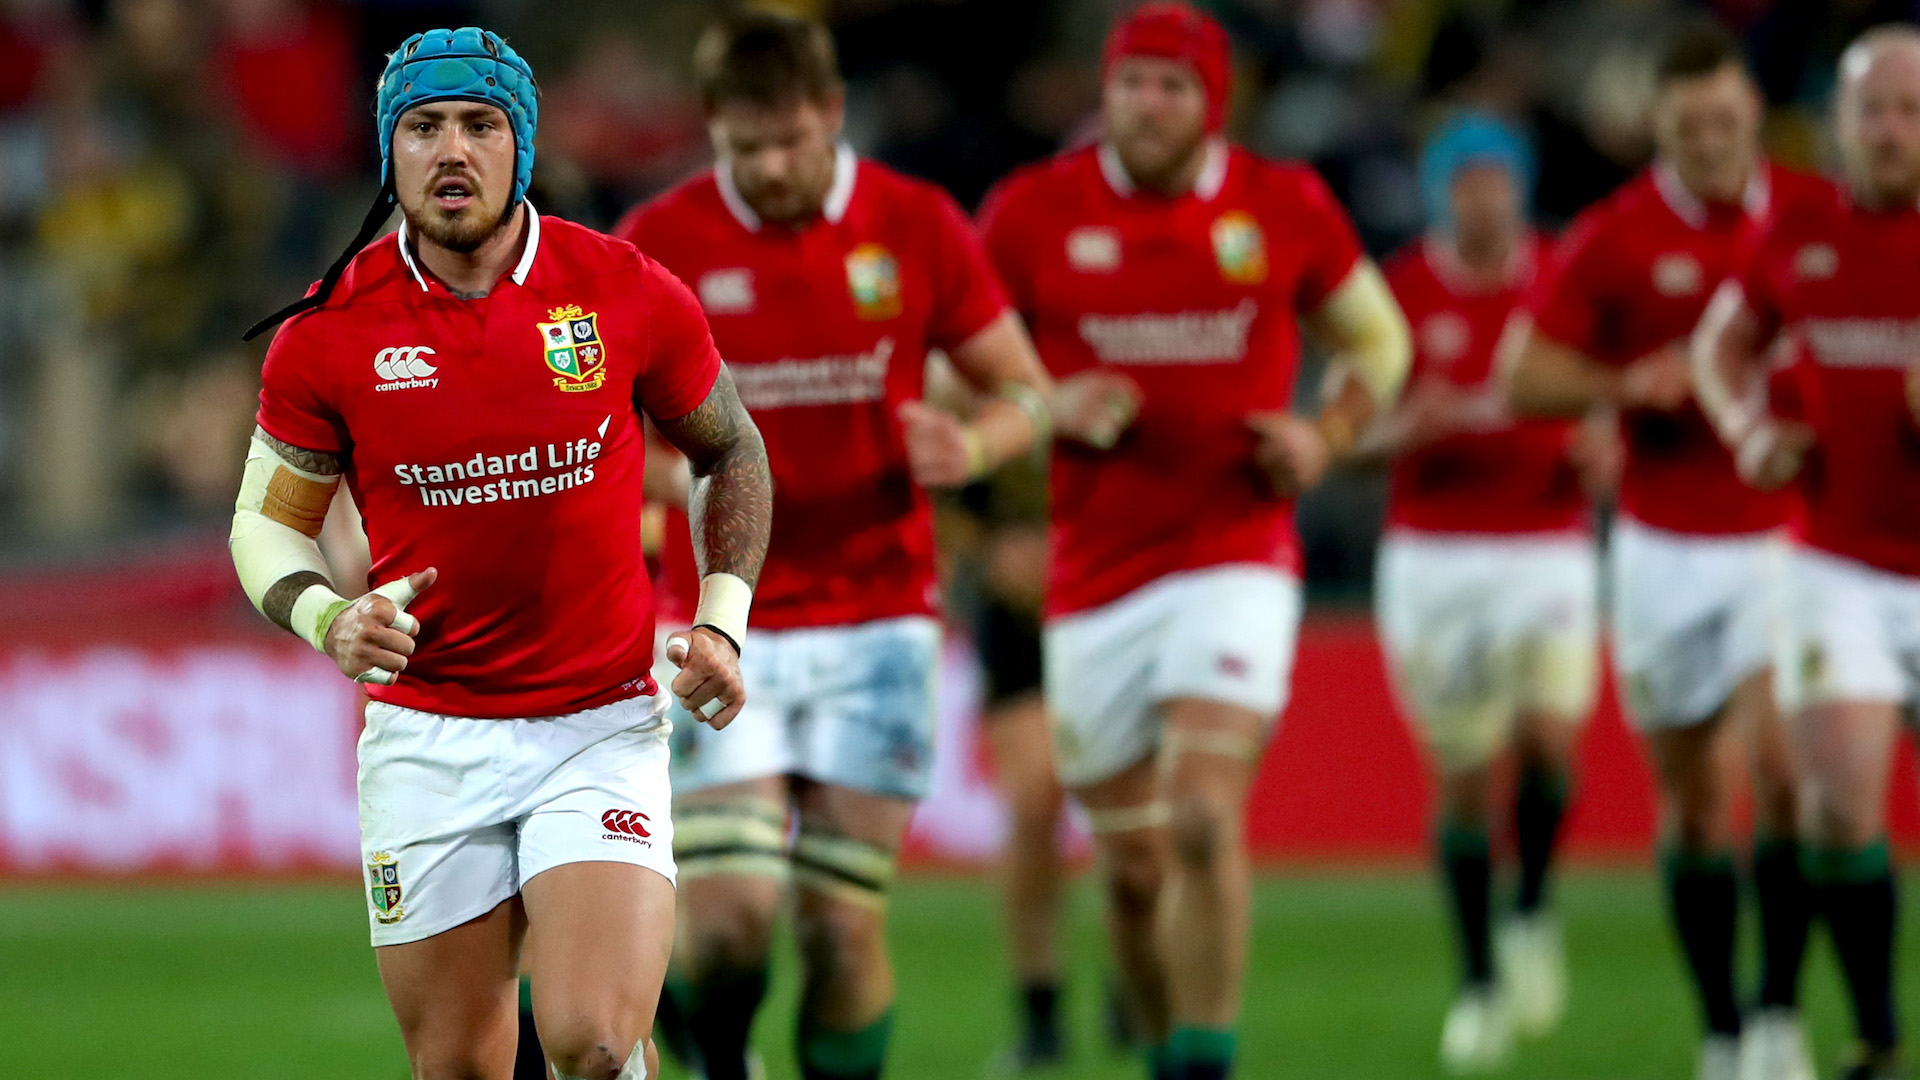 Since the Tour: Jack Nowell